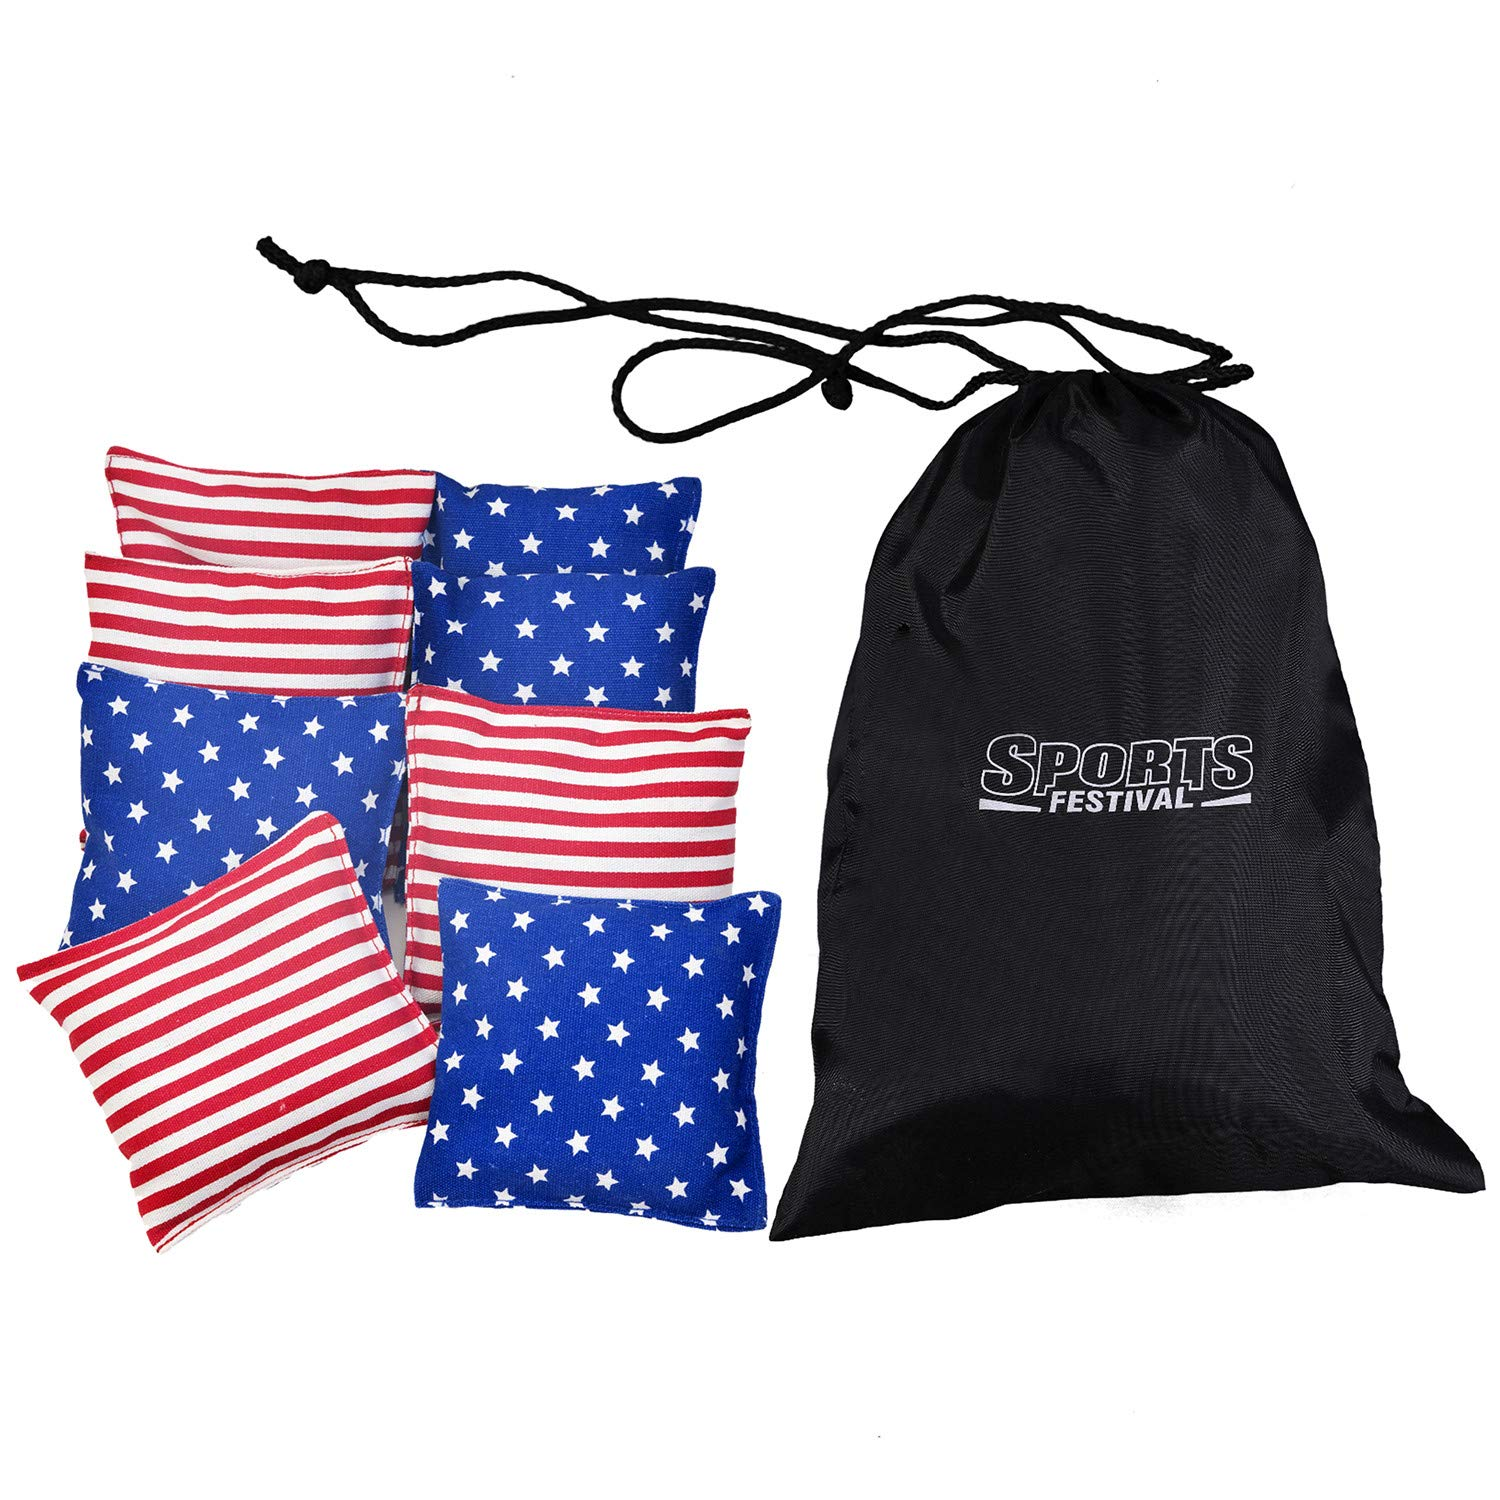 LOKATSE HOME 8 Regulation Cornhole Bags All Weather (Stars & Stripes ) by LOKATSE HOME